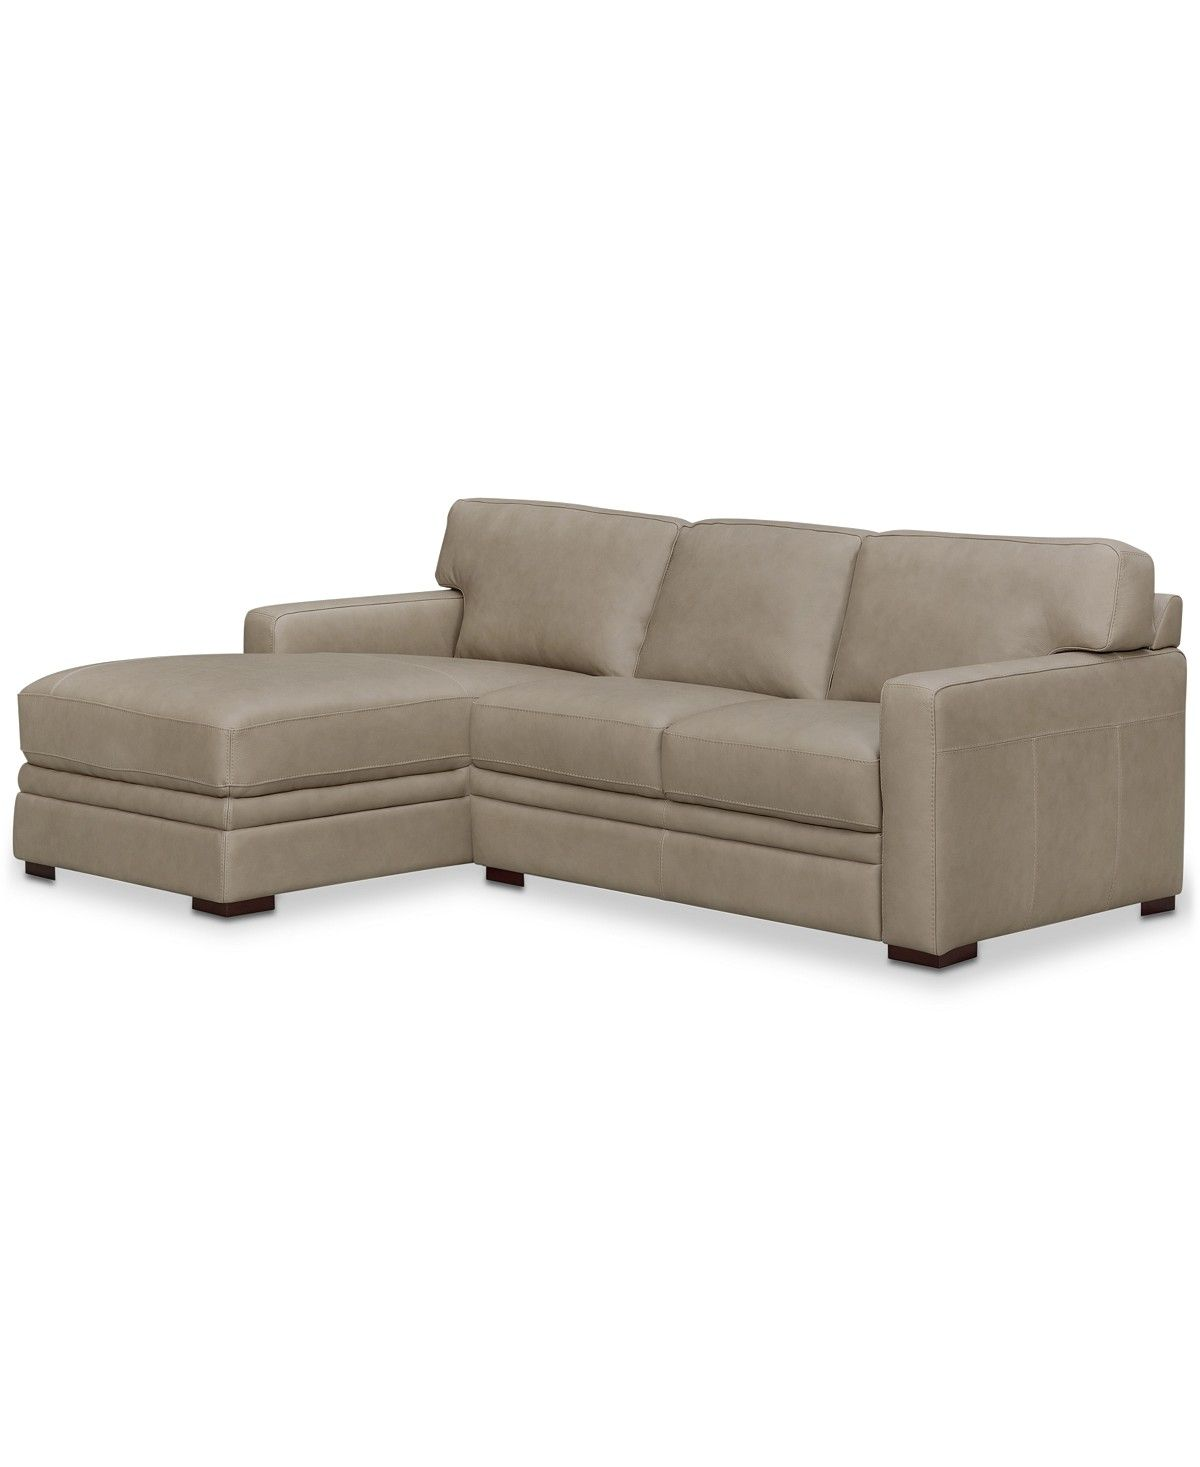 Furniture Avenell 2 Pc Leather Sectional With Chaise Created For Macy S Reviews Furniture Macy S Leather Sectional Sofas Leather Sectional Leather Sofa